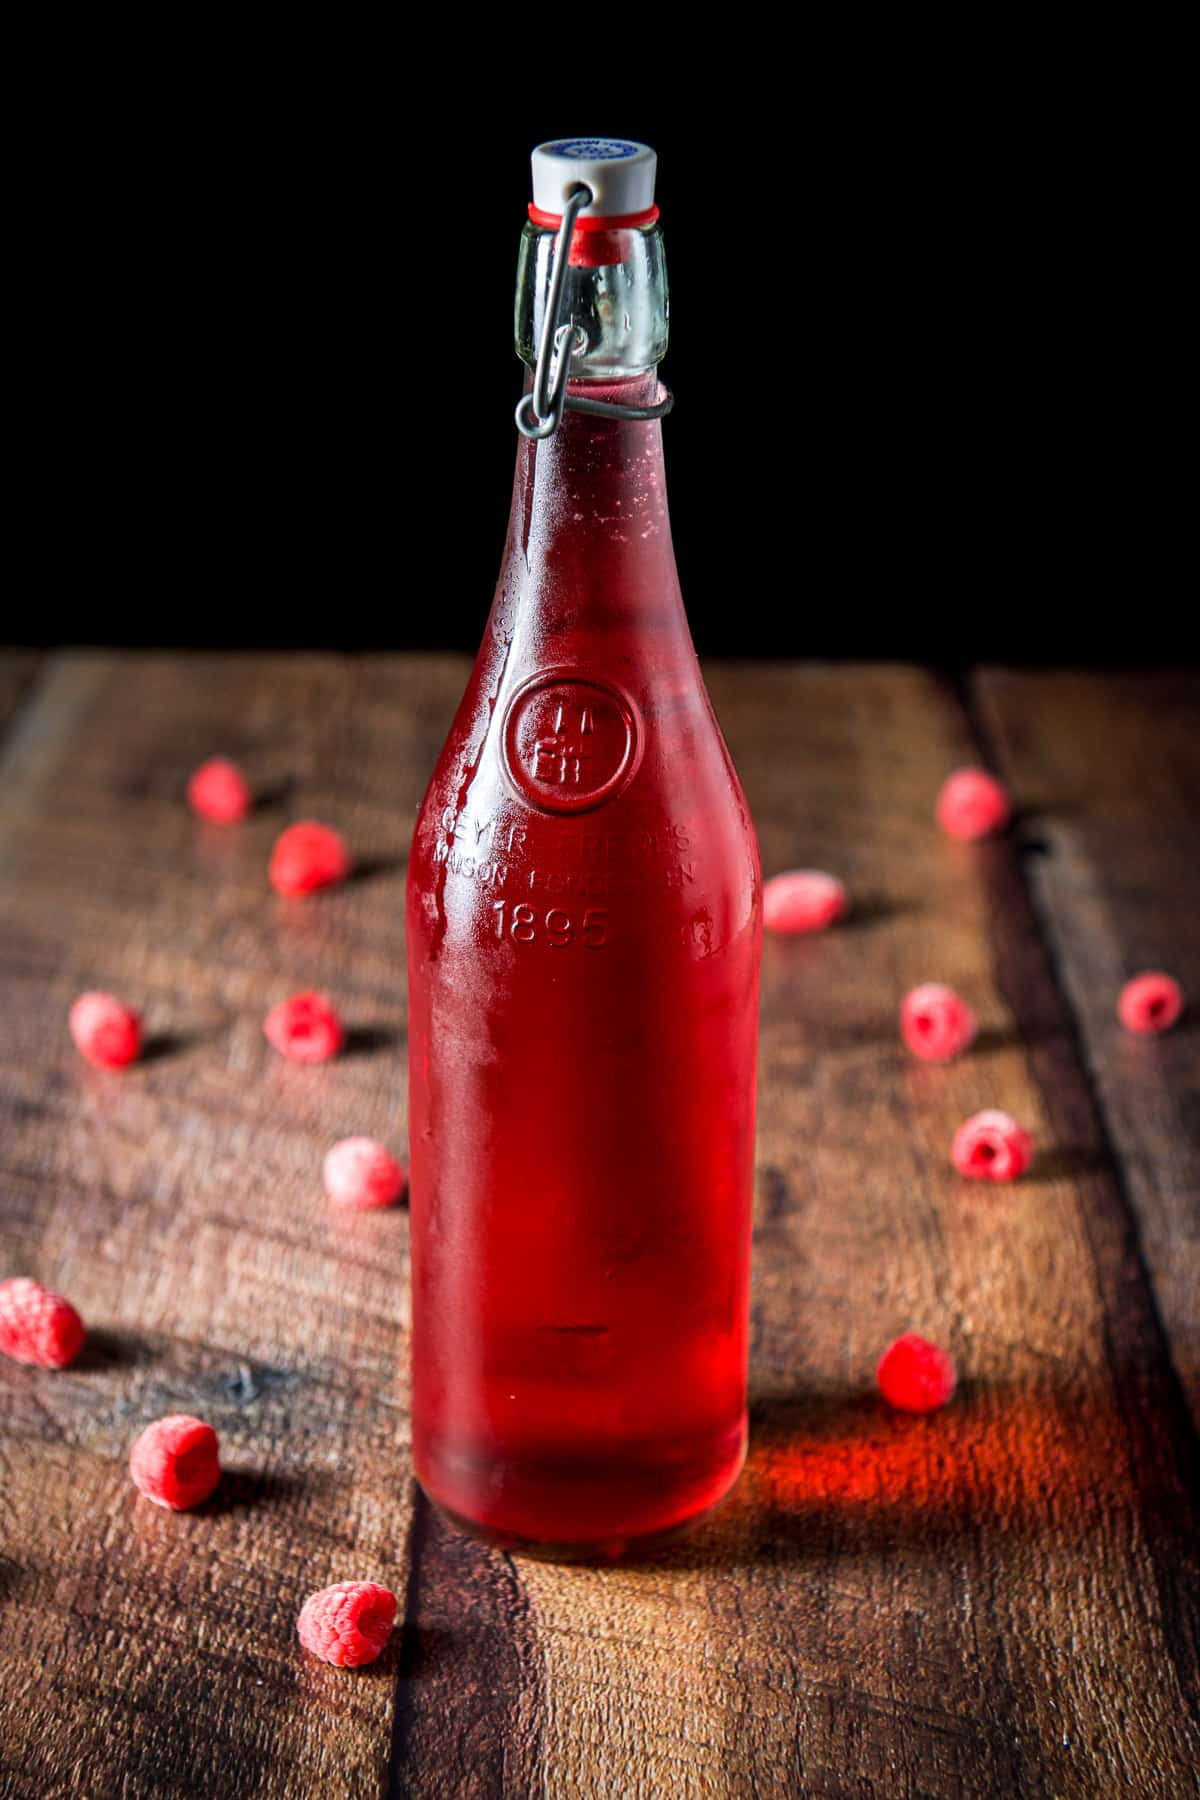 A capped bottle of red vodka with raspberries on the table